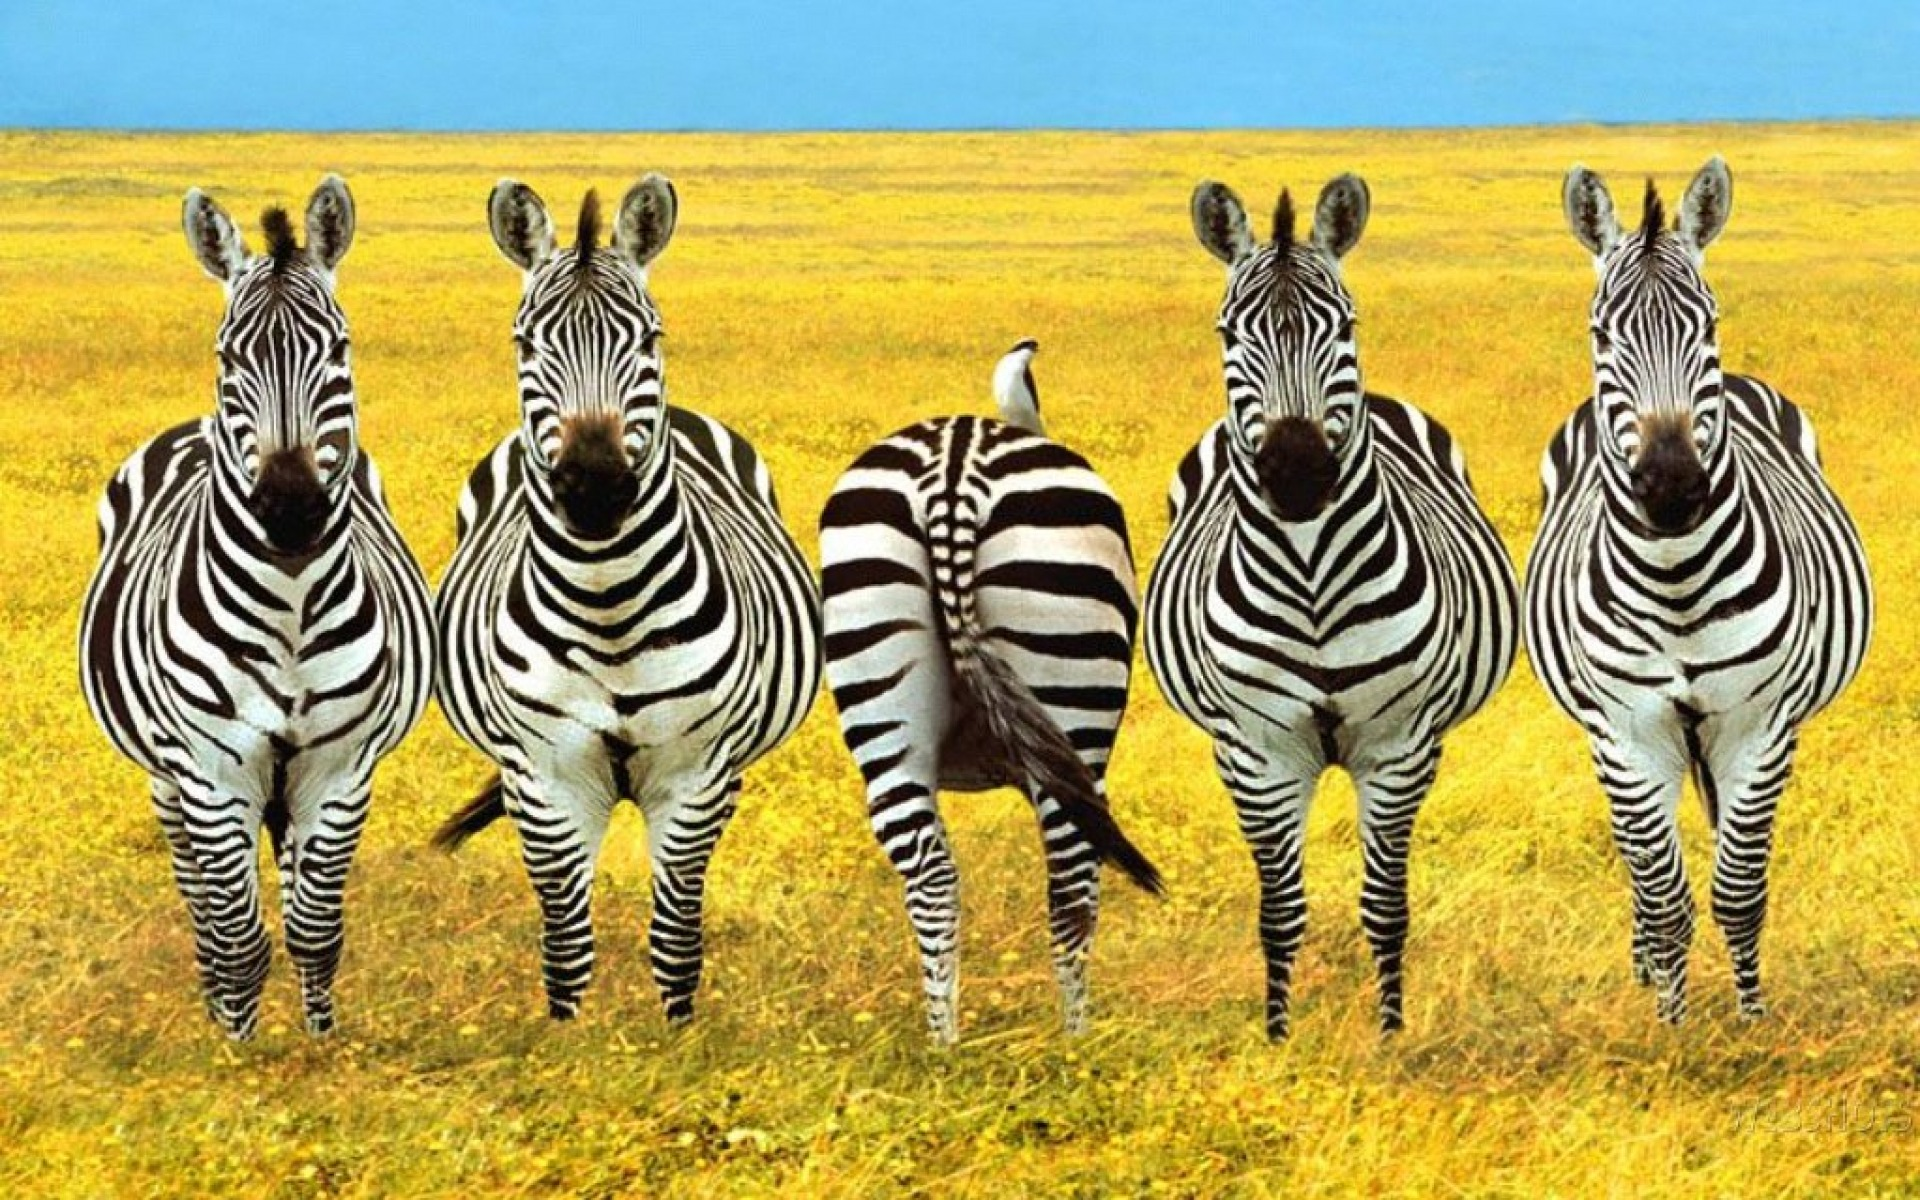 zebras-out-of-line-wallpapers_53576_1920x1200.jpg